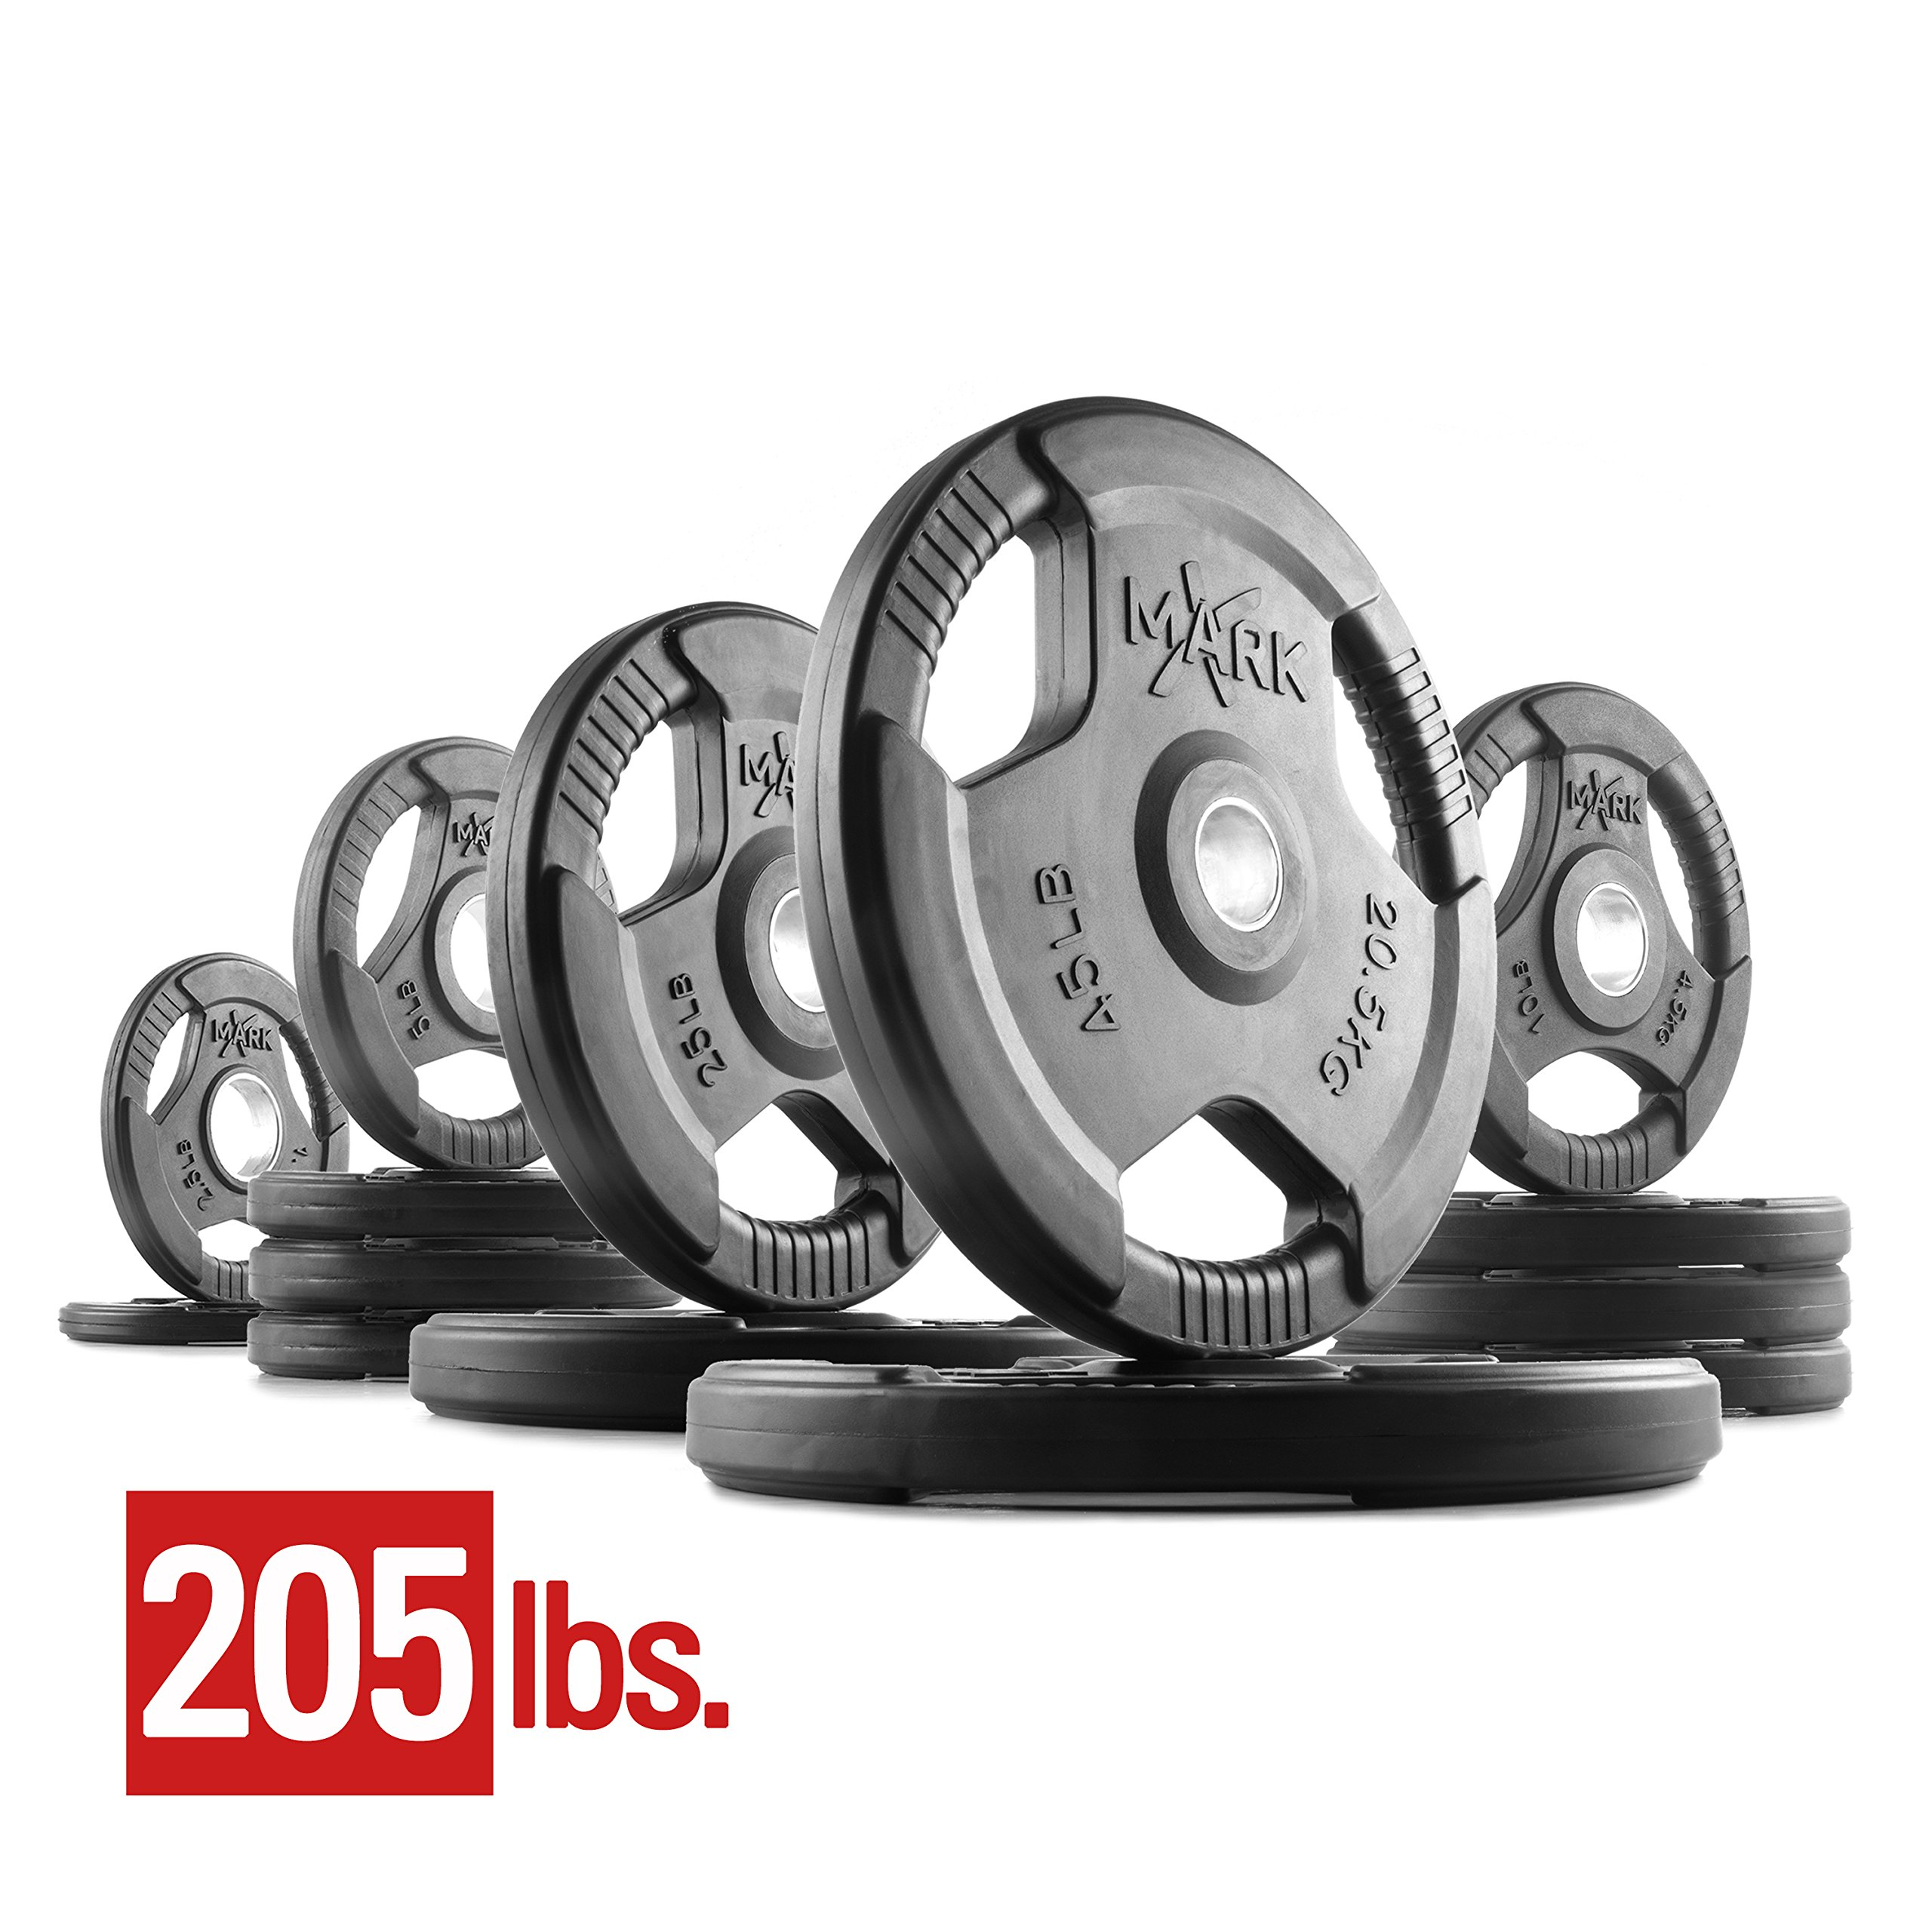 XMark Premium Quality Rubber Coated Tri-grip Olympic Plate Weights - 205 lb. Set